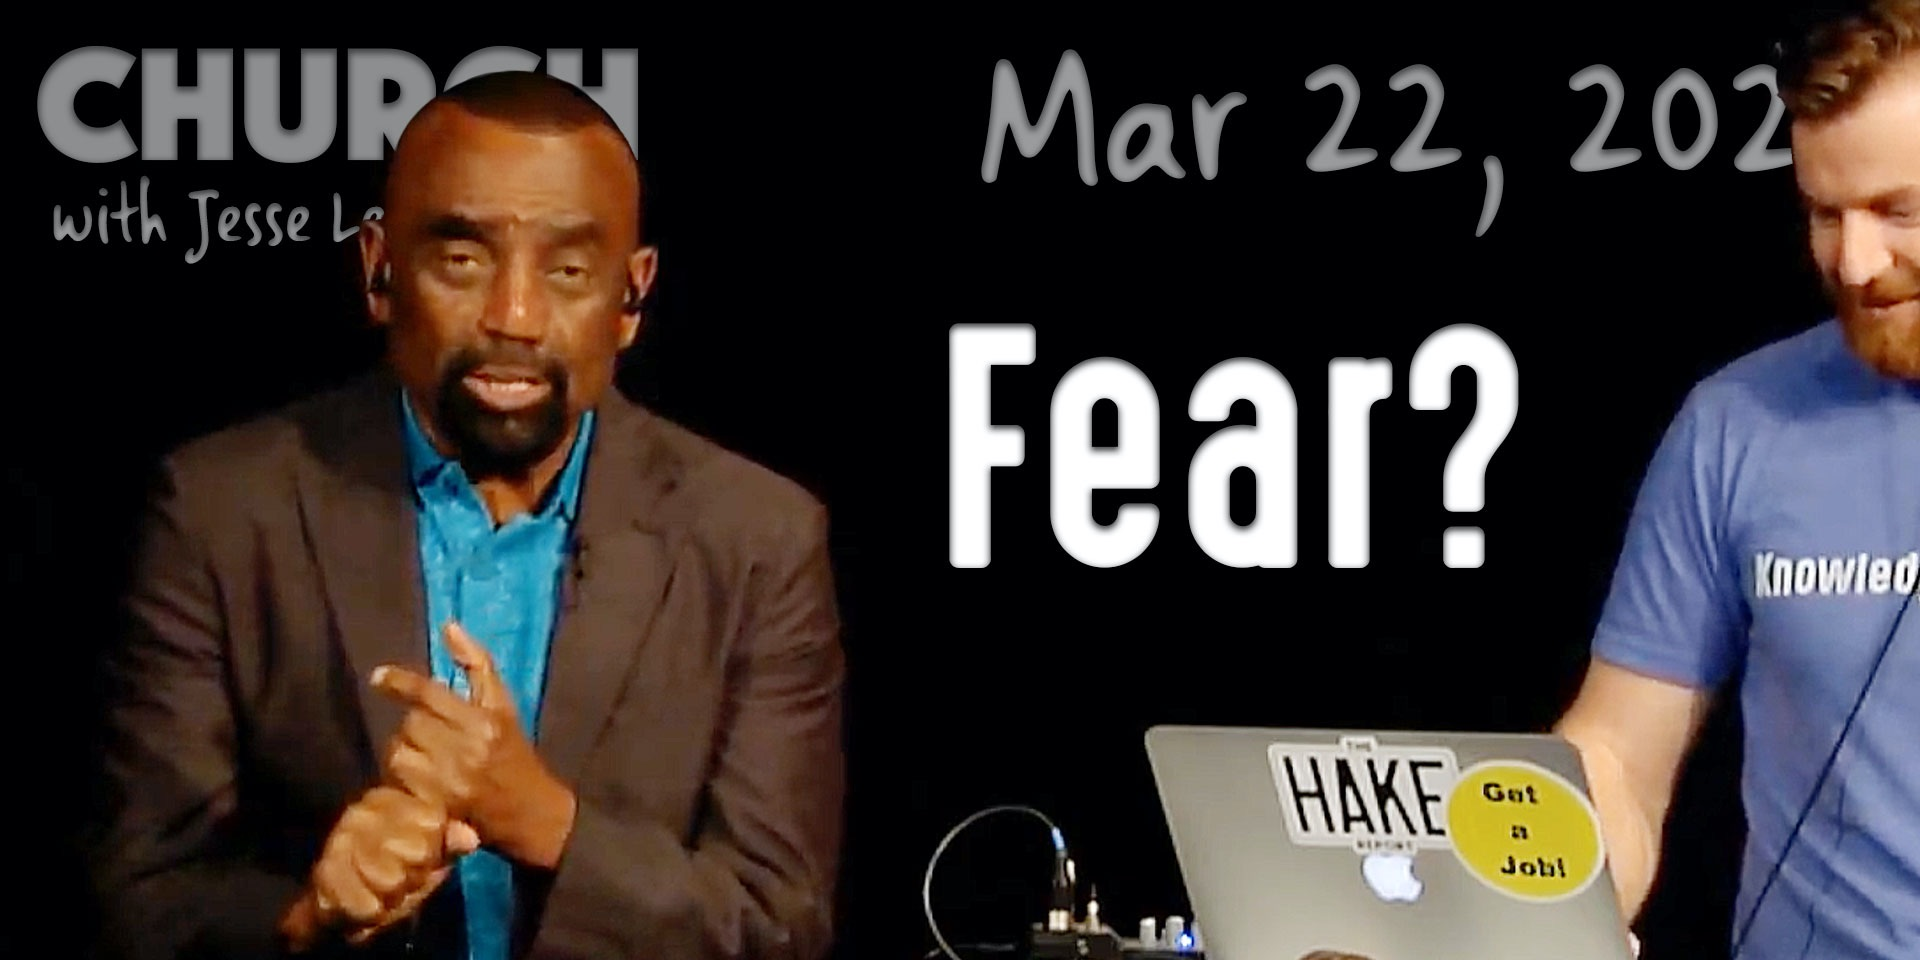 Fear? Church Q&A (3/22/20)